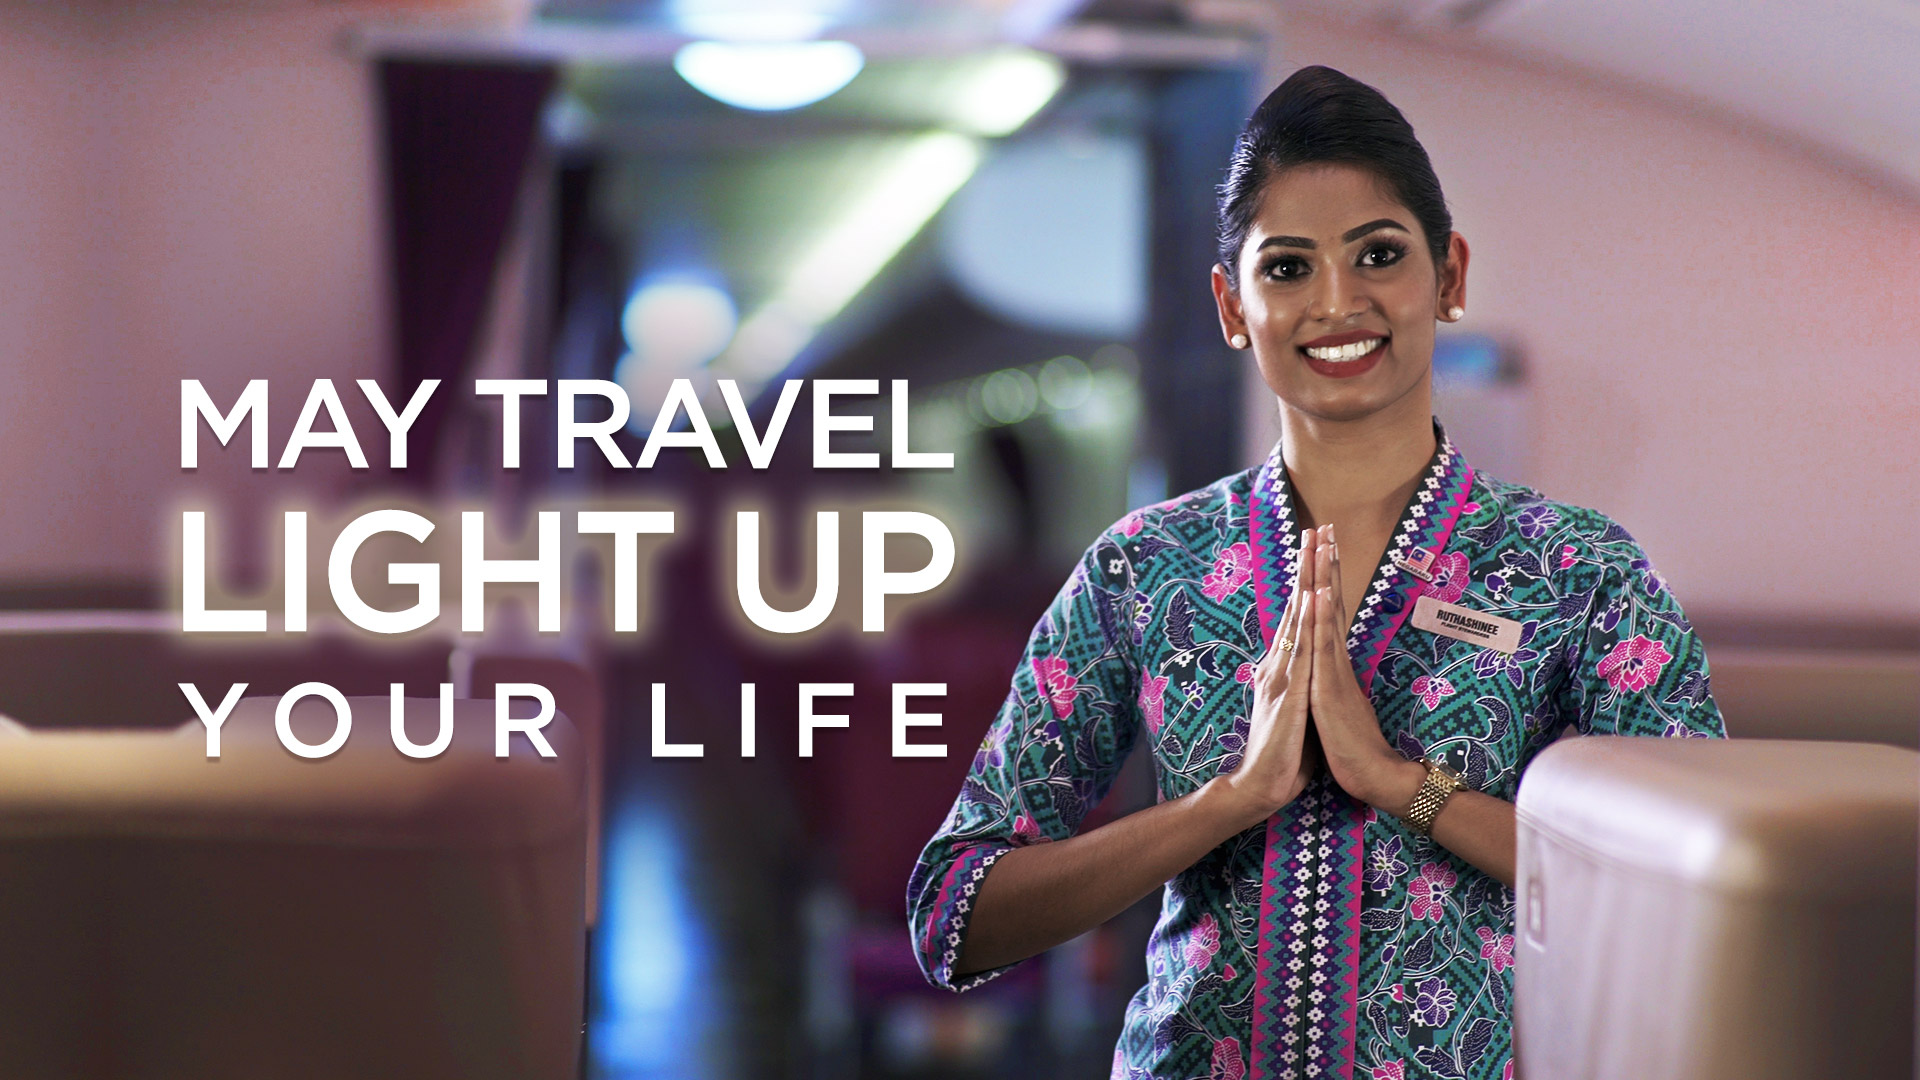 Malaysia Airlines Celebrates The Triumph Of Light With Deepavali Festive Video